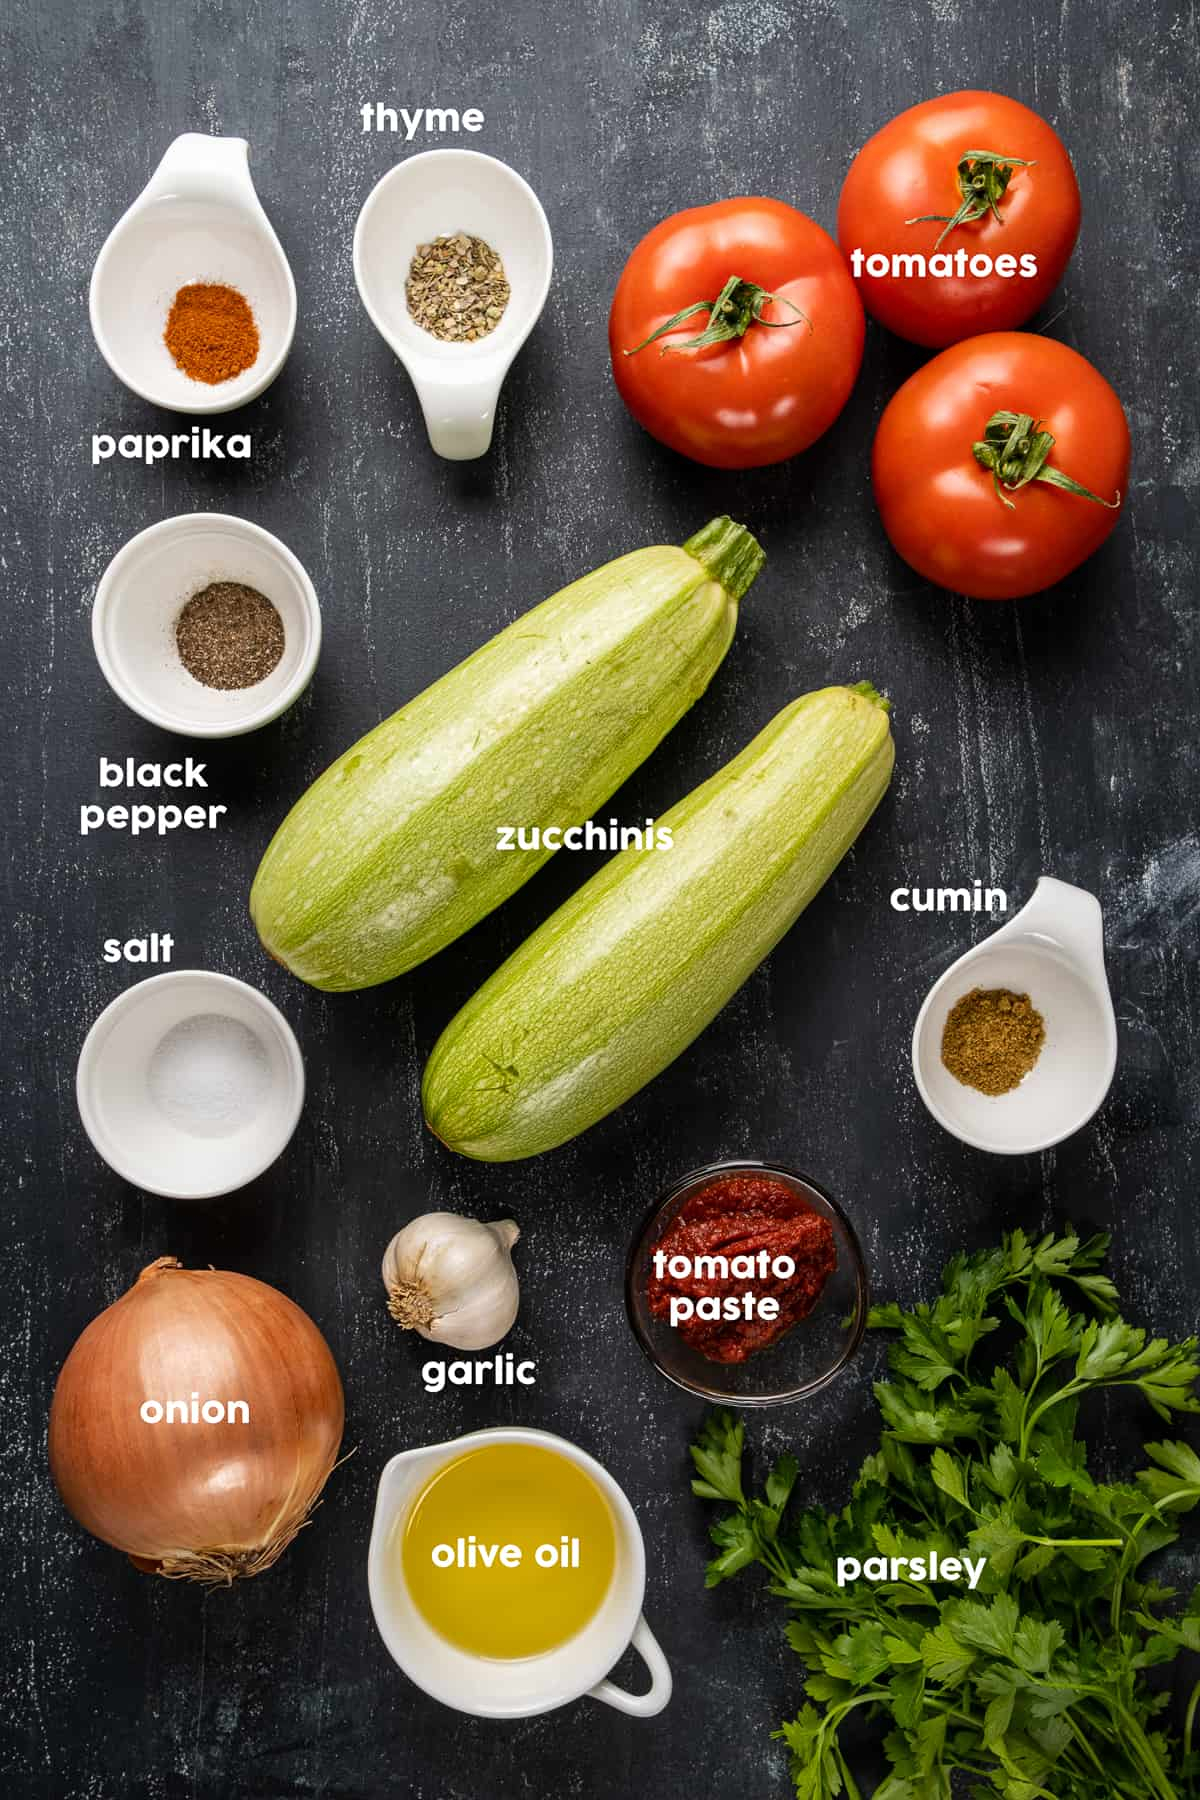 Zucchini, tomatoes, spices, garlic, onion, olive oil, tomato paste, parsley on a dark background.